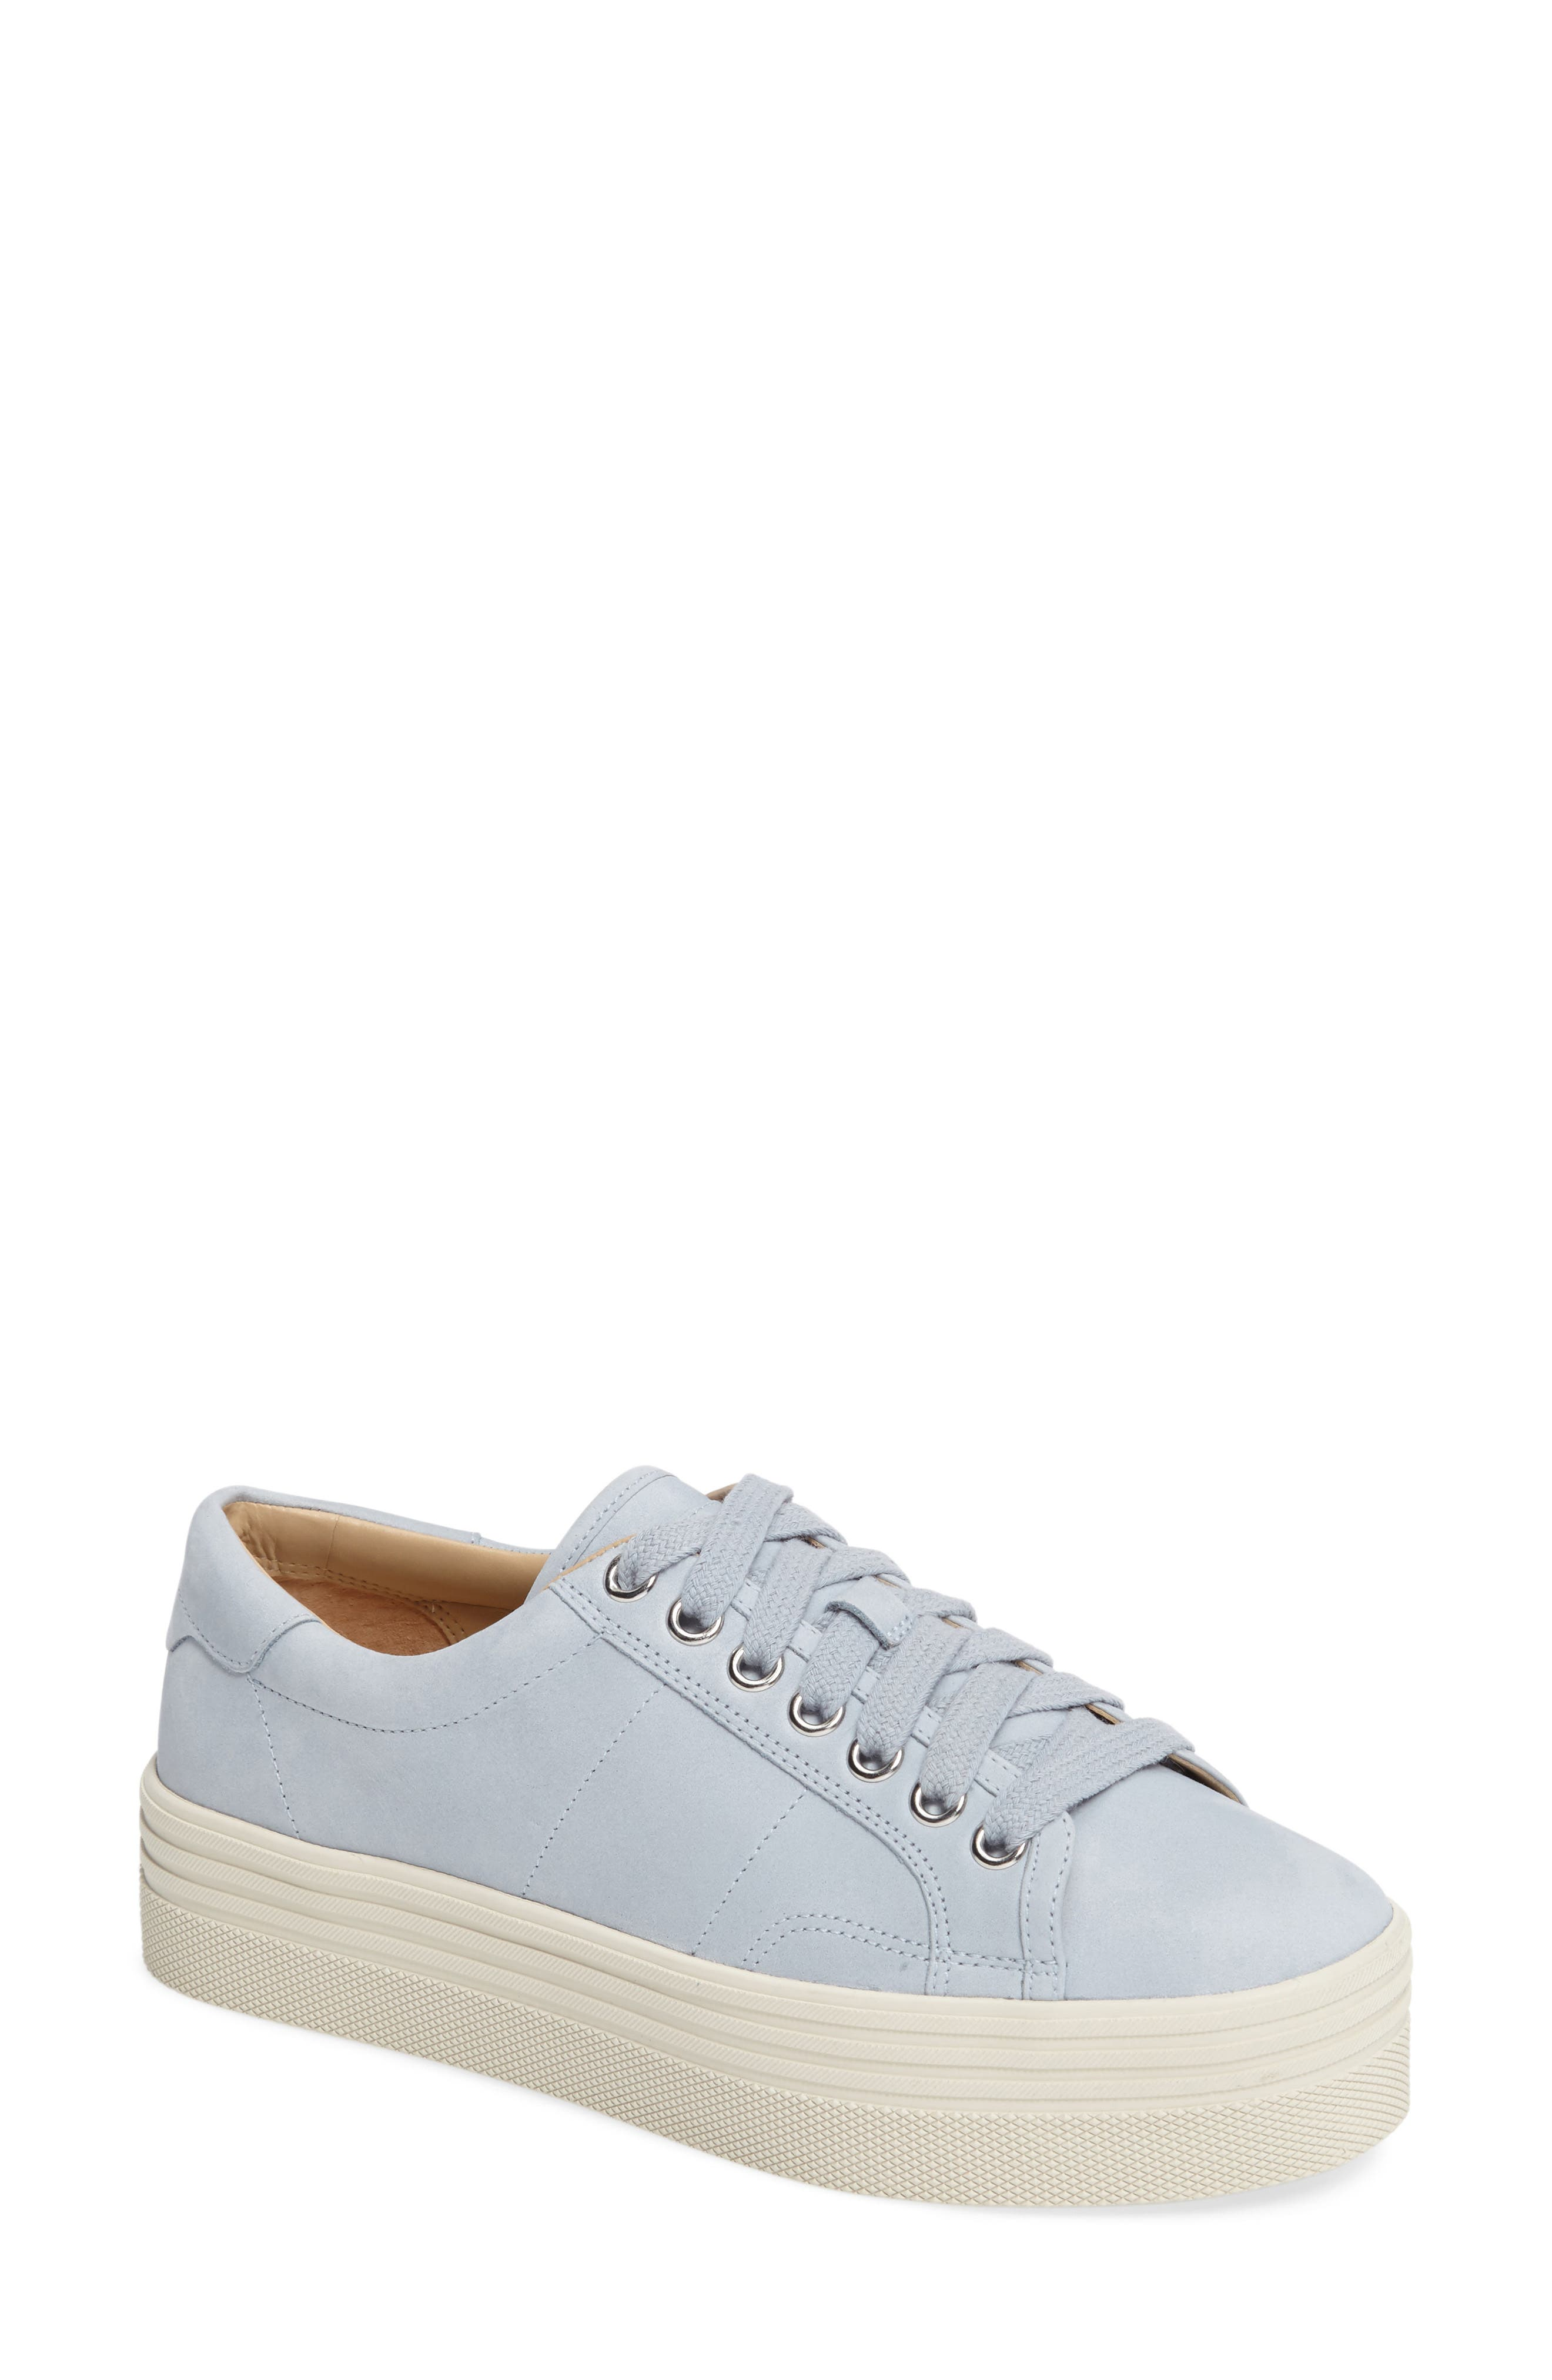 Emmy Platform Sneaker,                             Main thumbnail 7, color,